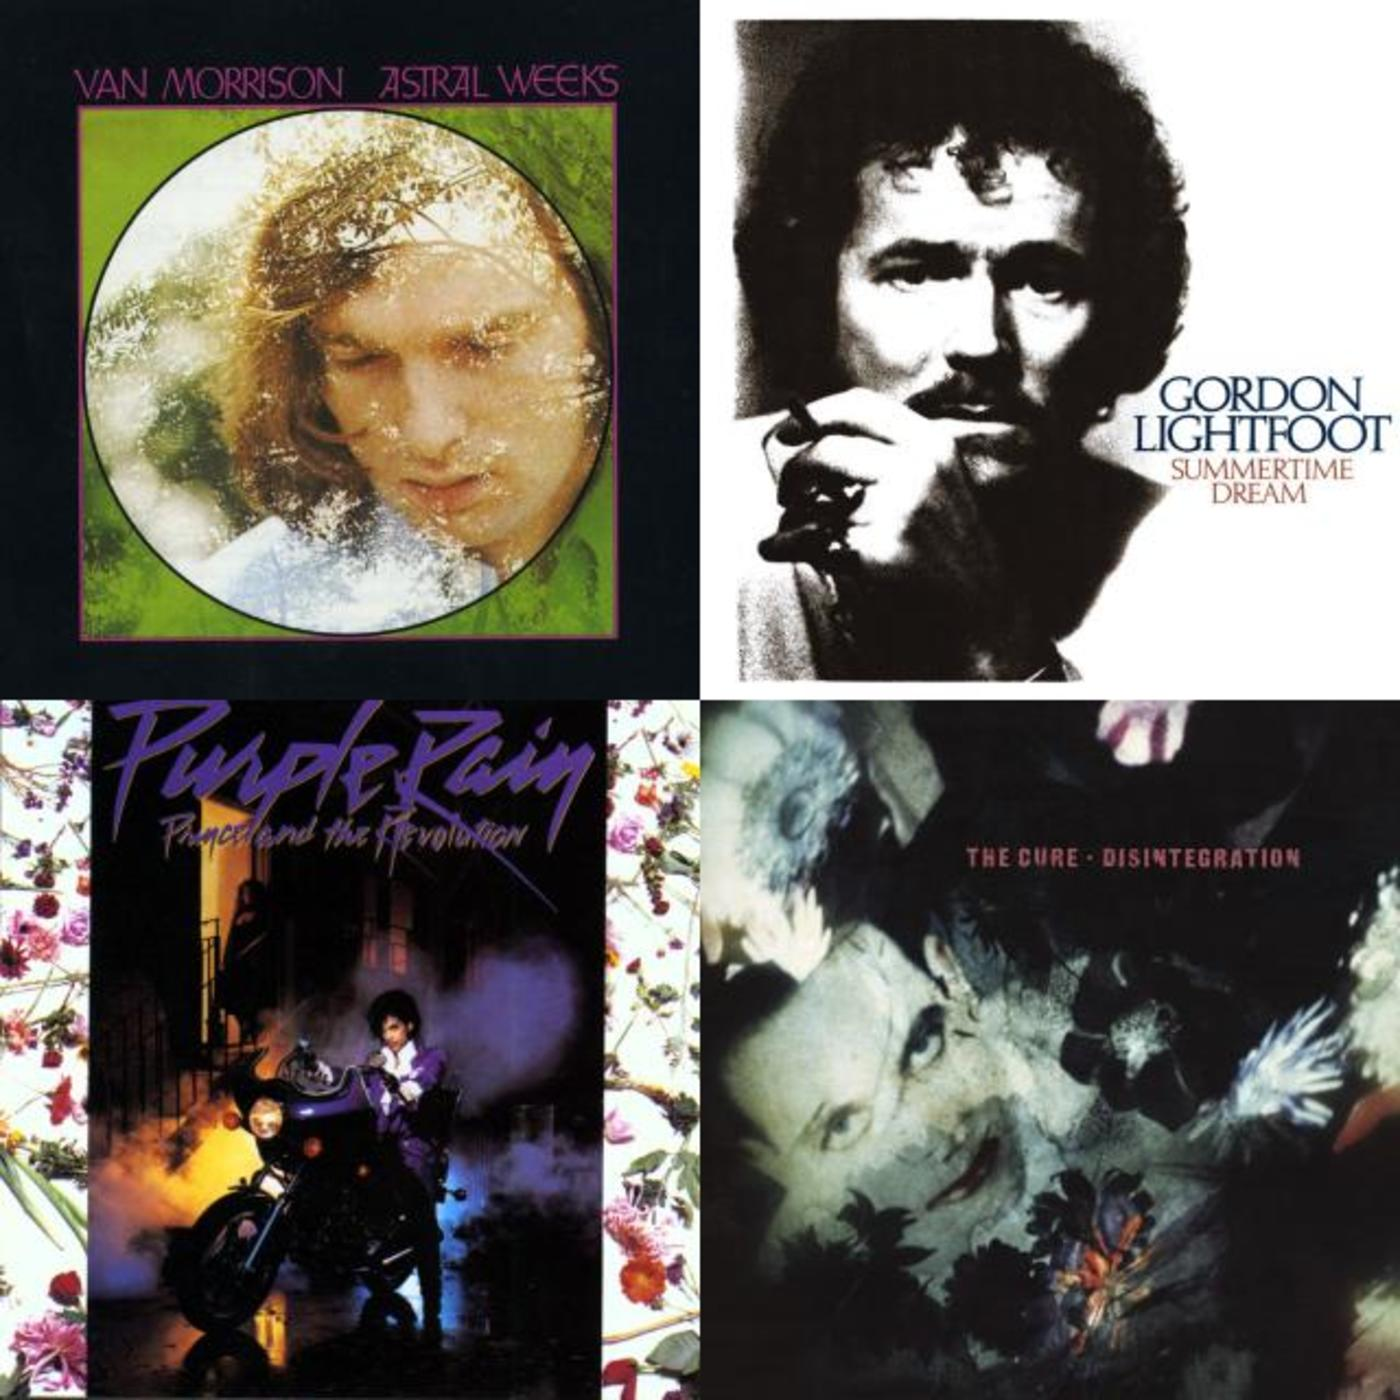 Celebrity Playlist: Michael J Nelson - Gordon Lightfoot, Prince & The Revolution, Van Morrison, The Cure, Talking Heads, The Replacements, The Rutles, Marshall Crenshaw, The Lemonheads